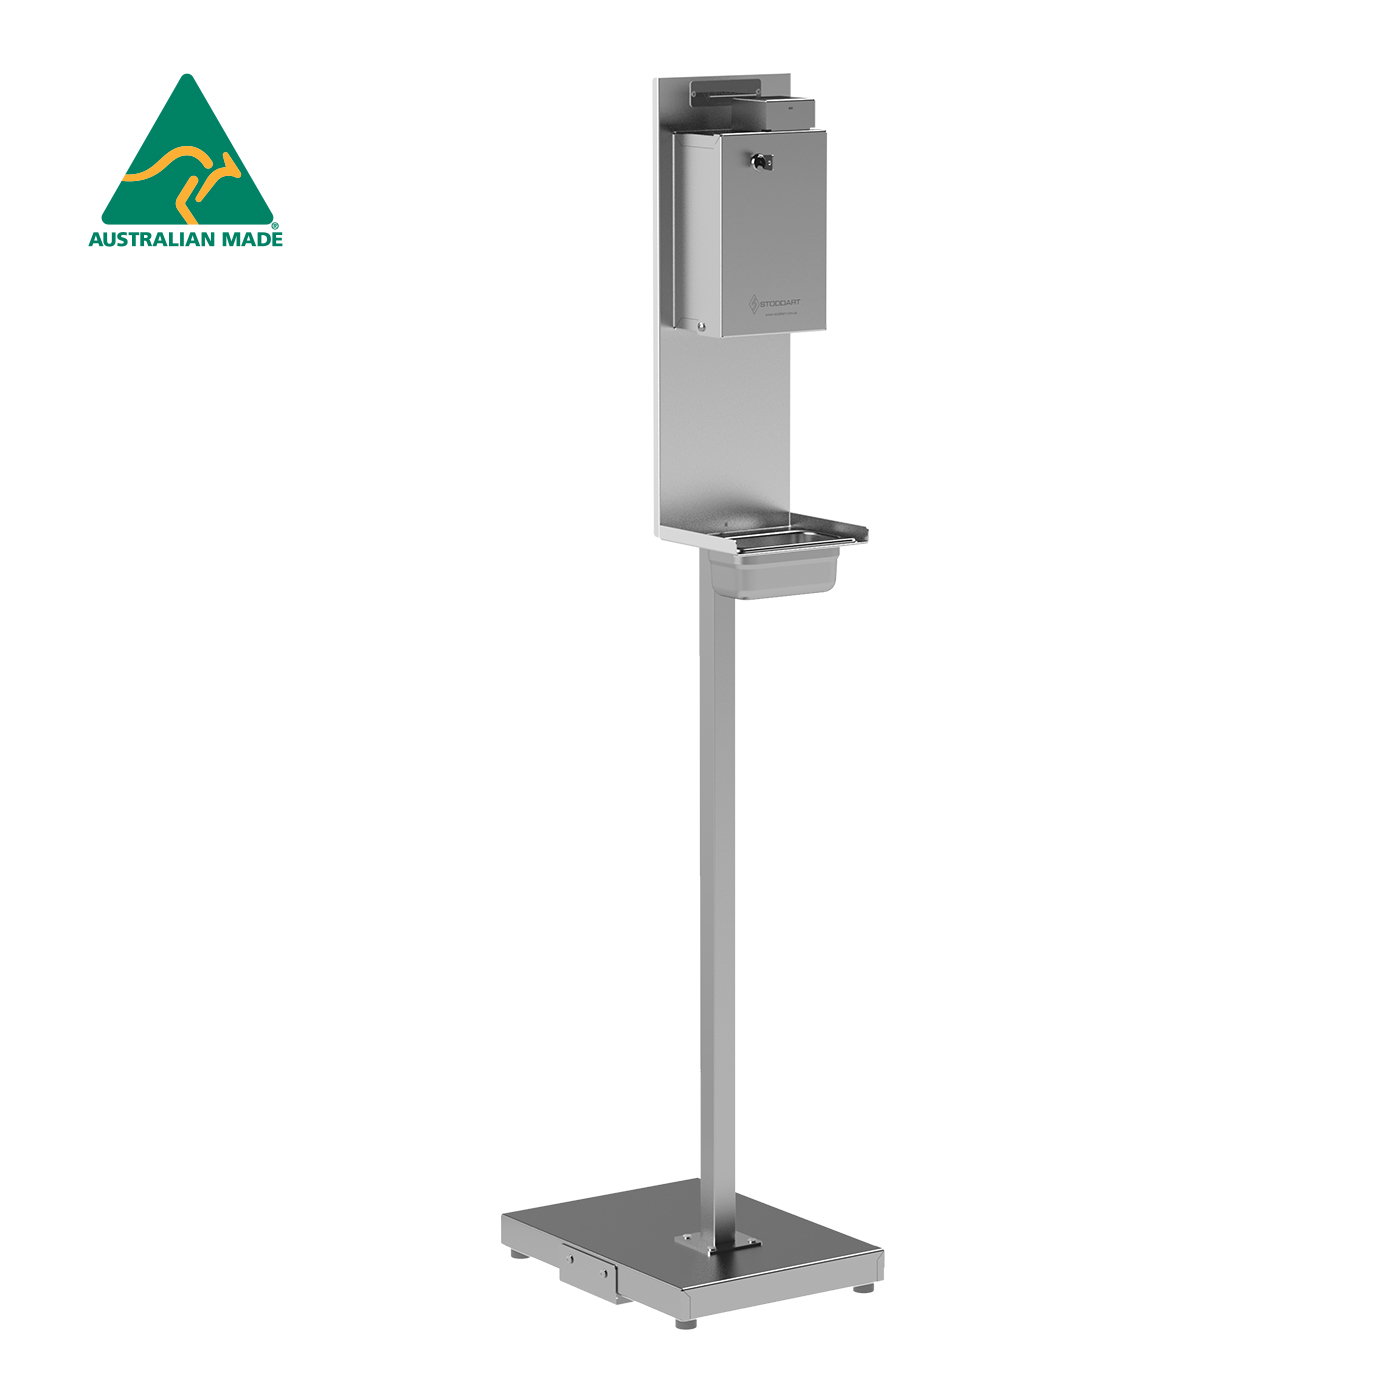 Standard Security Hand Sanitiser Dispenser on Stainless Steel Stand